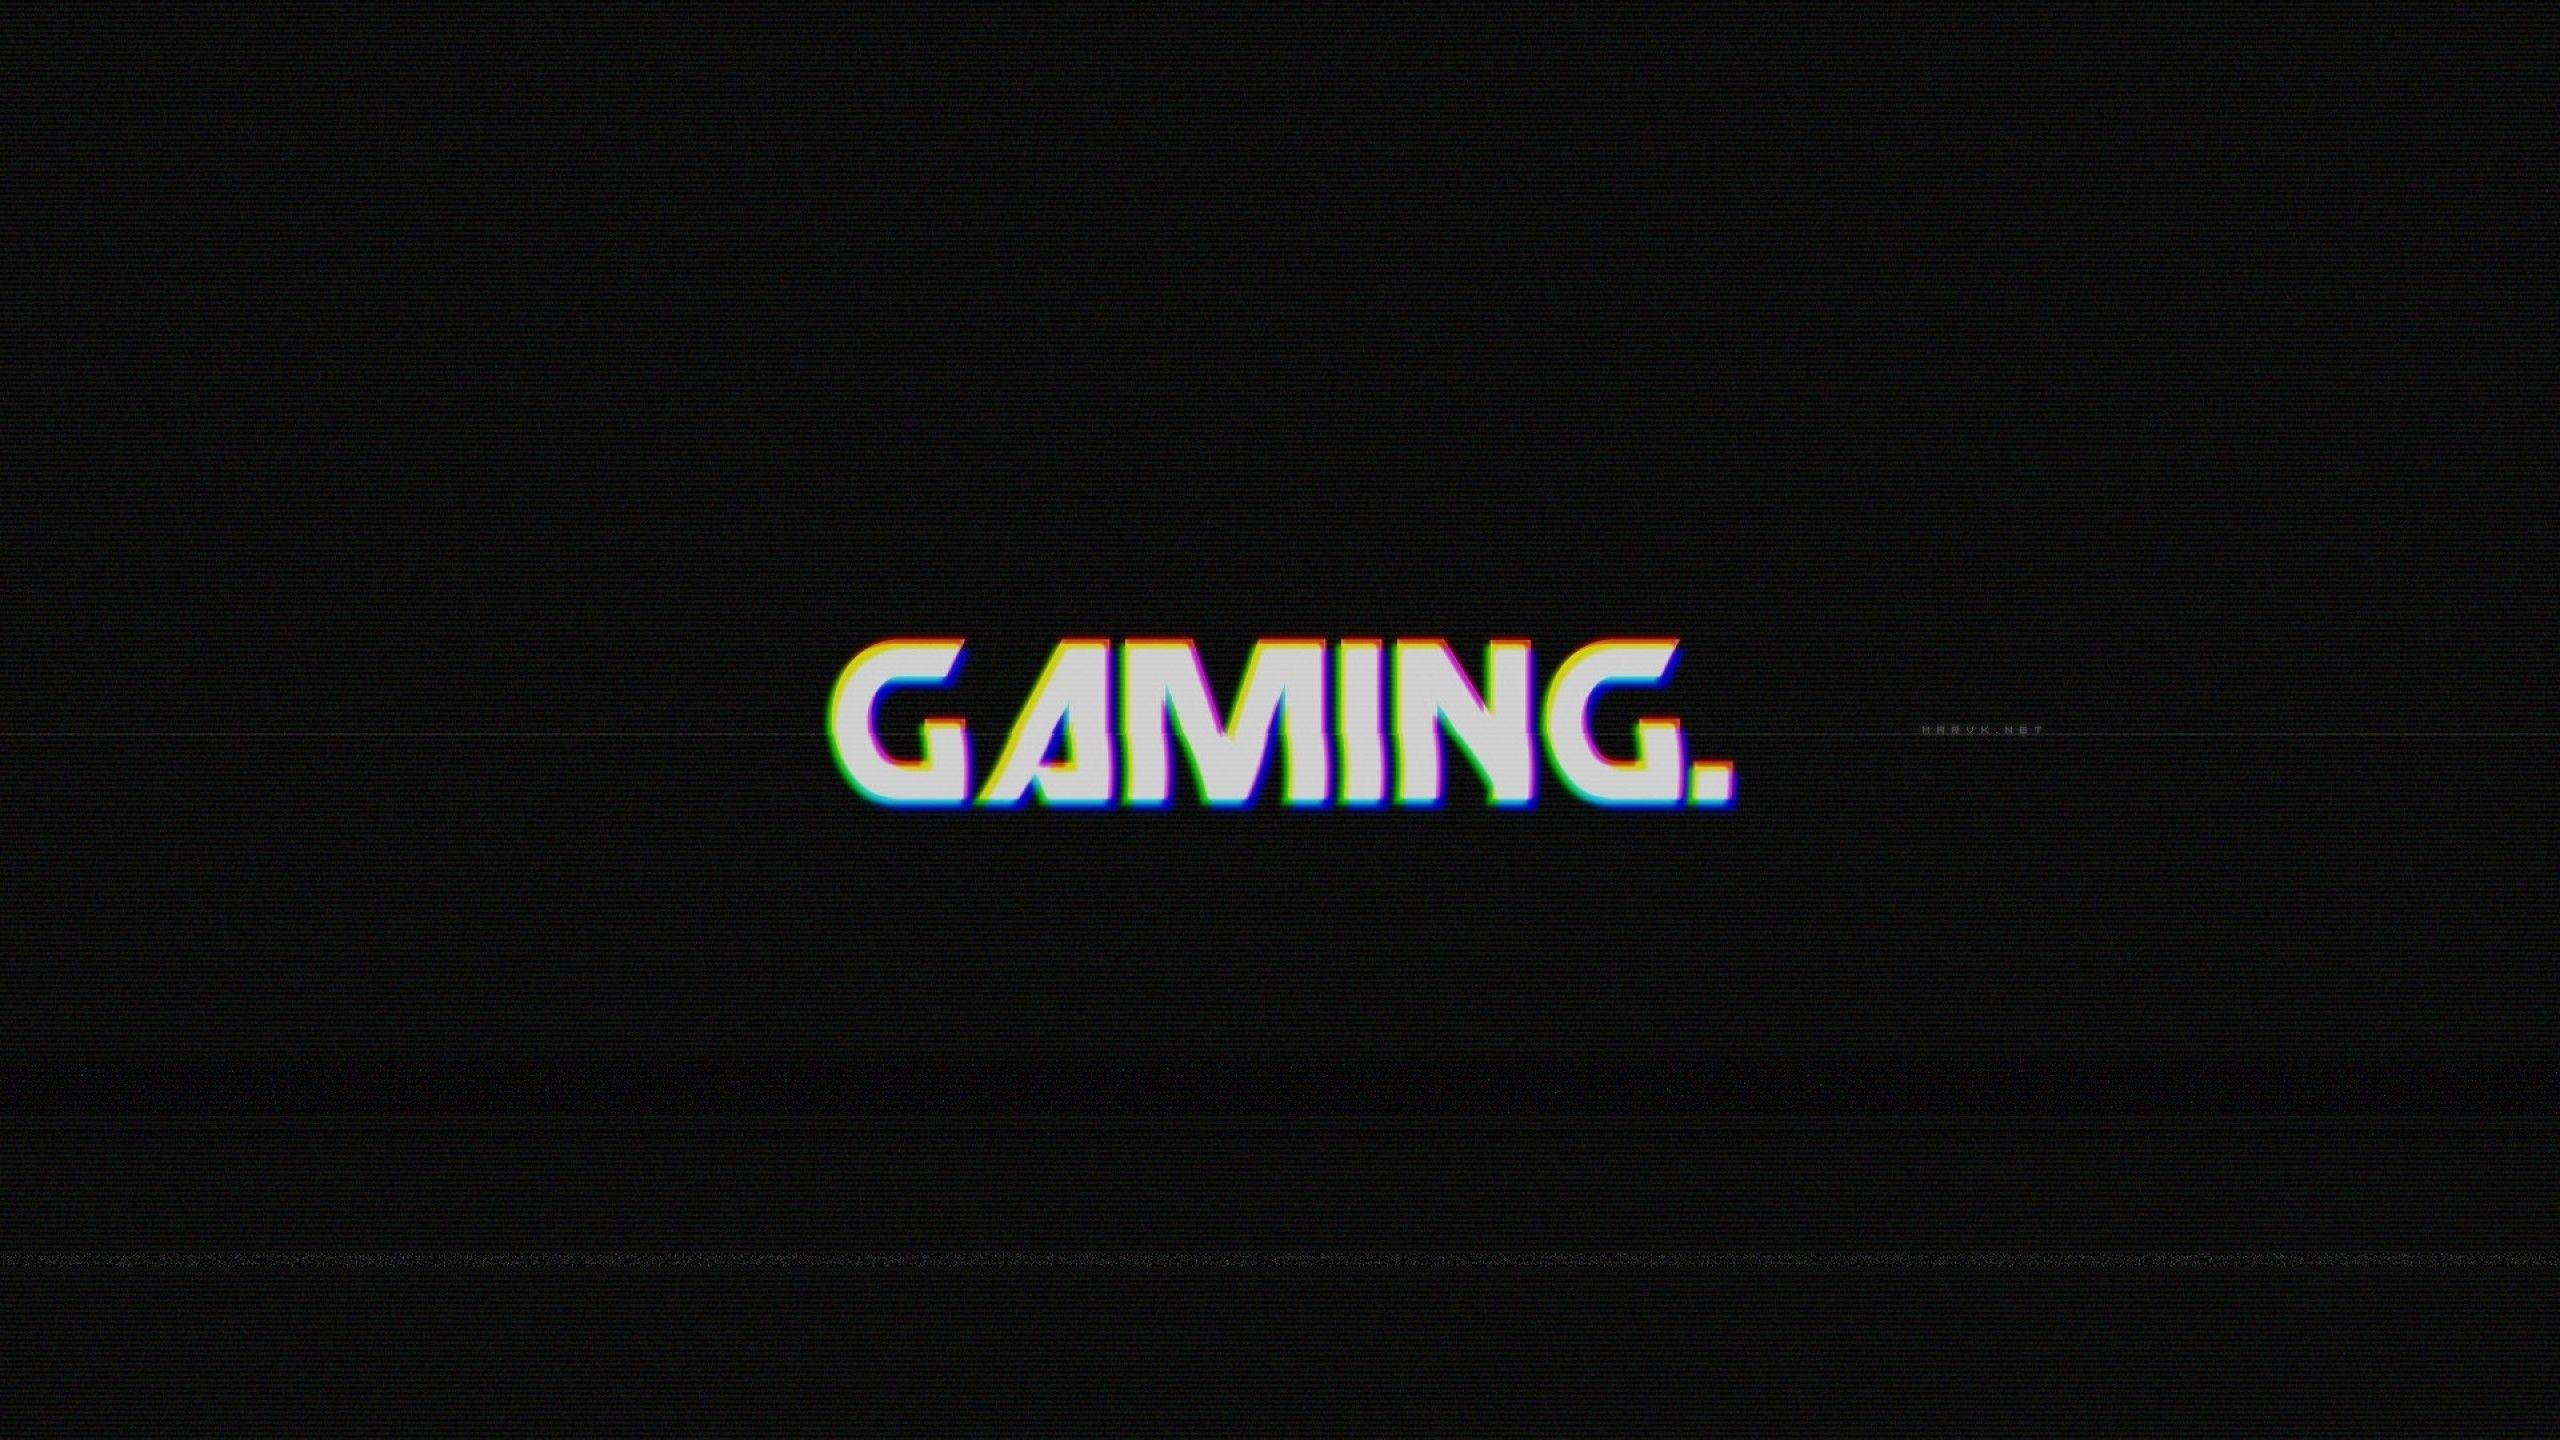 Youtube Gaming Wallpapers Top Free Youtube Gaming Backgrounds